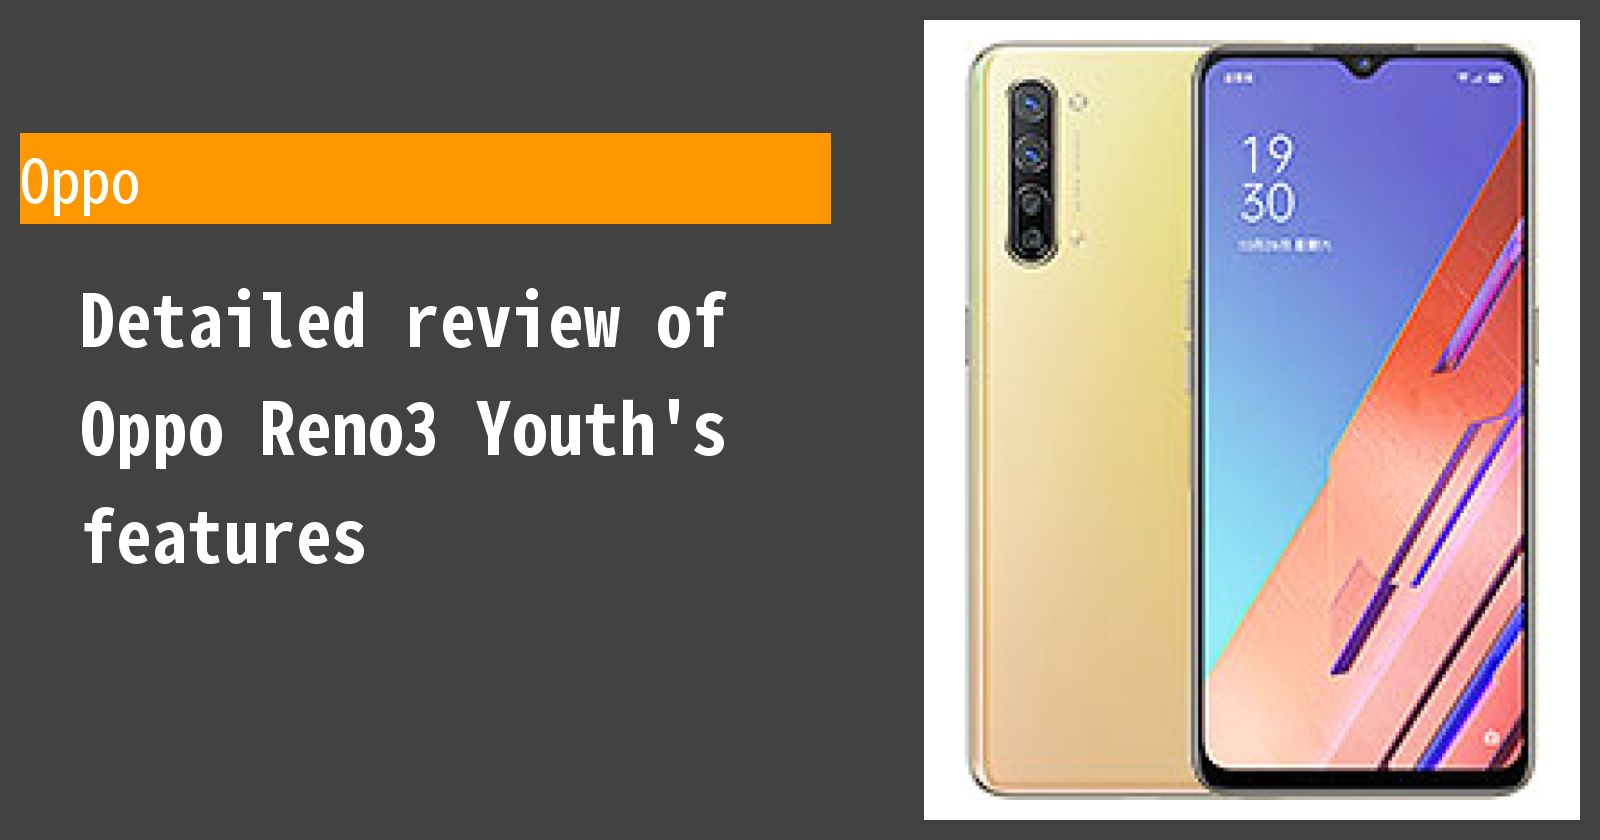 Detailed review of Oppo Reno3 Youth's features